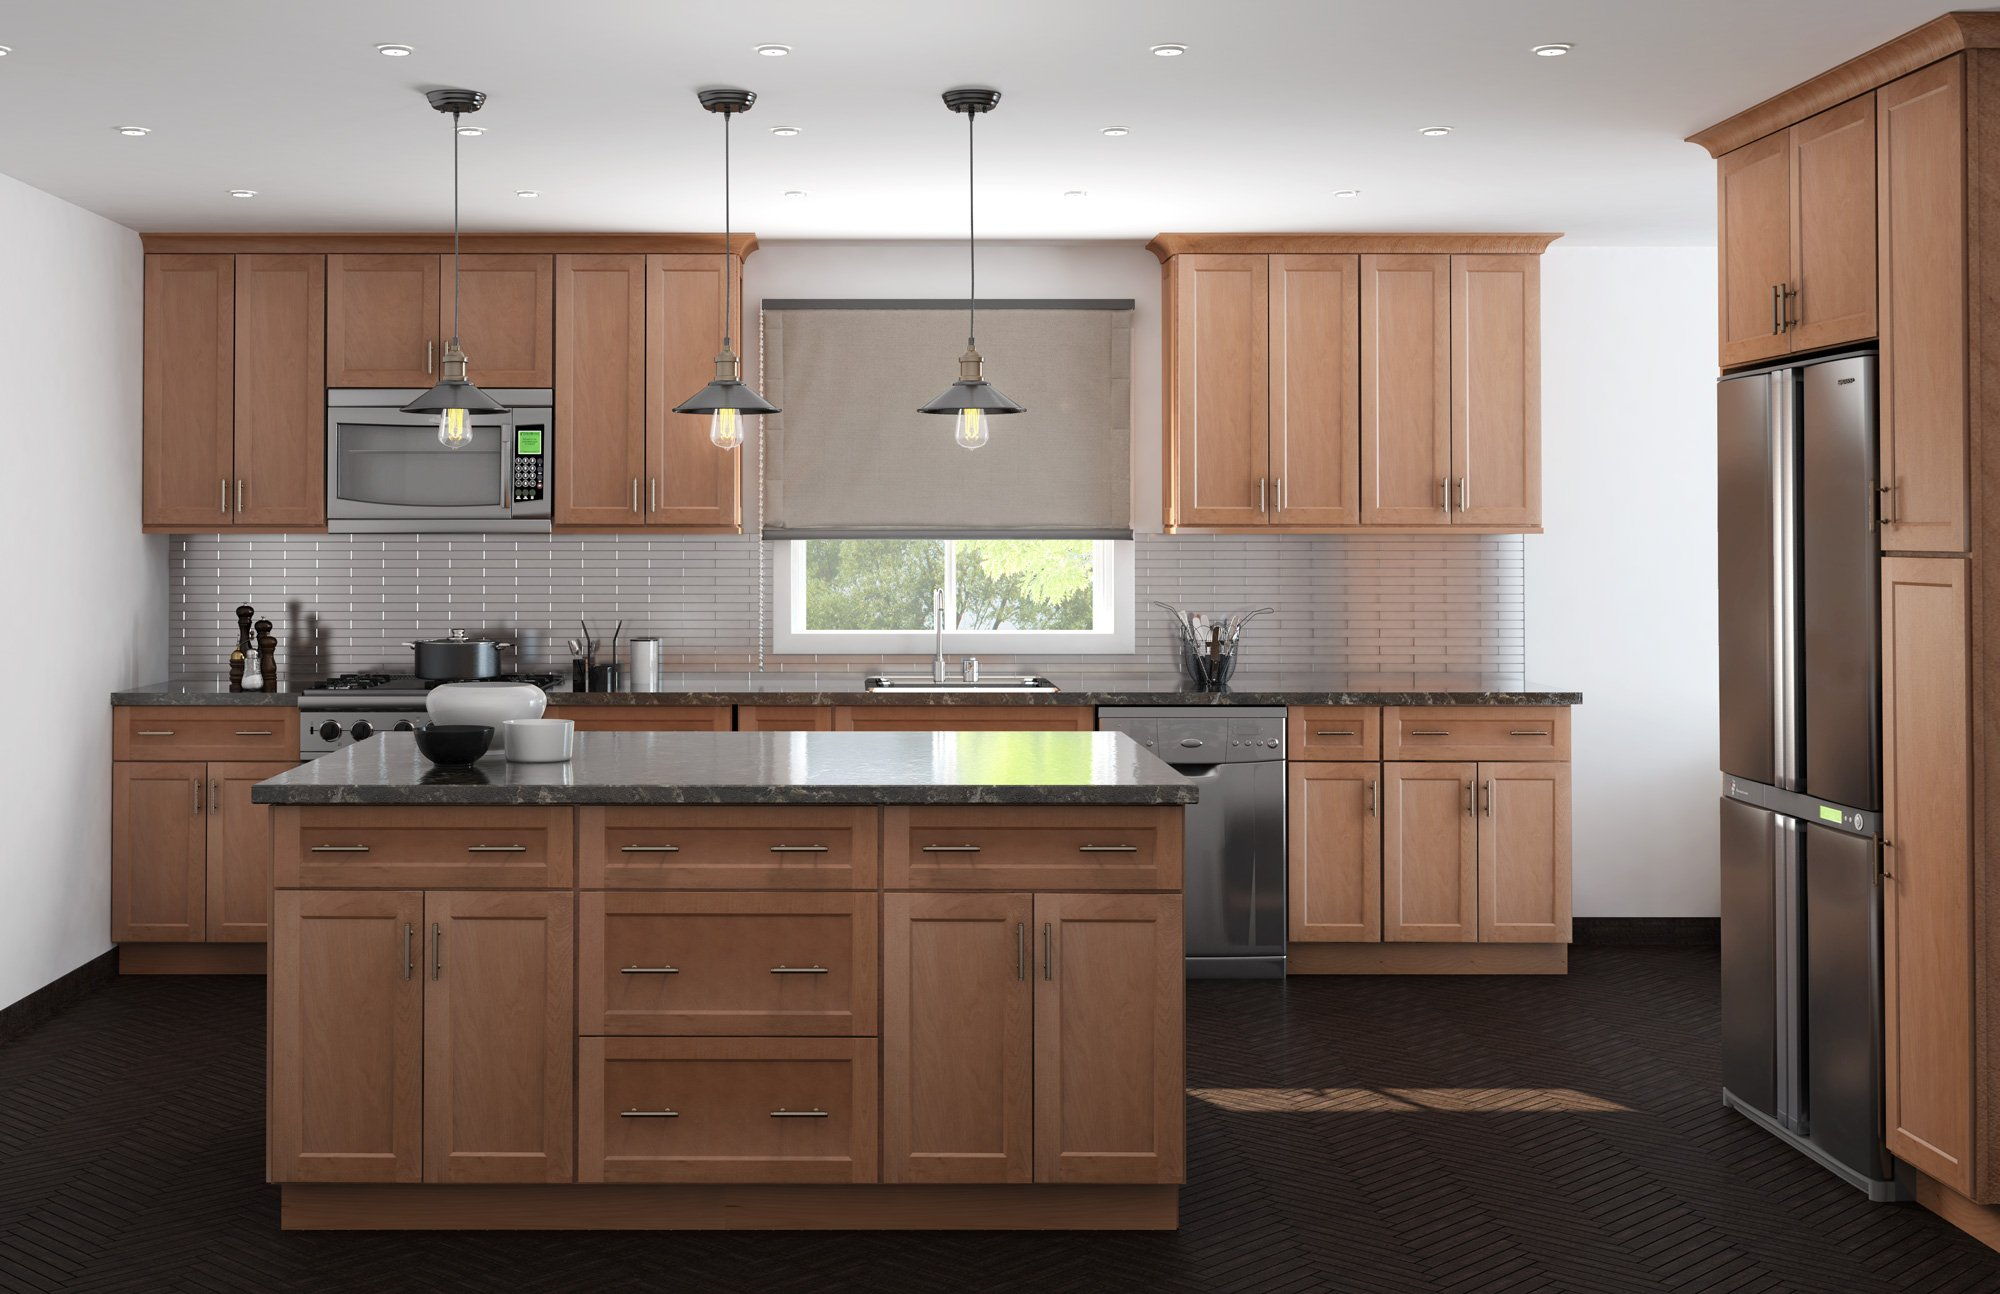 kitchen design in oxford cubitac basic series 187 alba kitchen design center kitchen 620